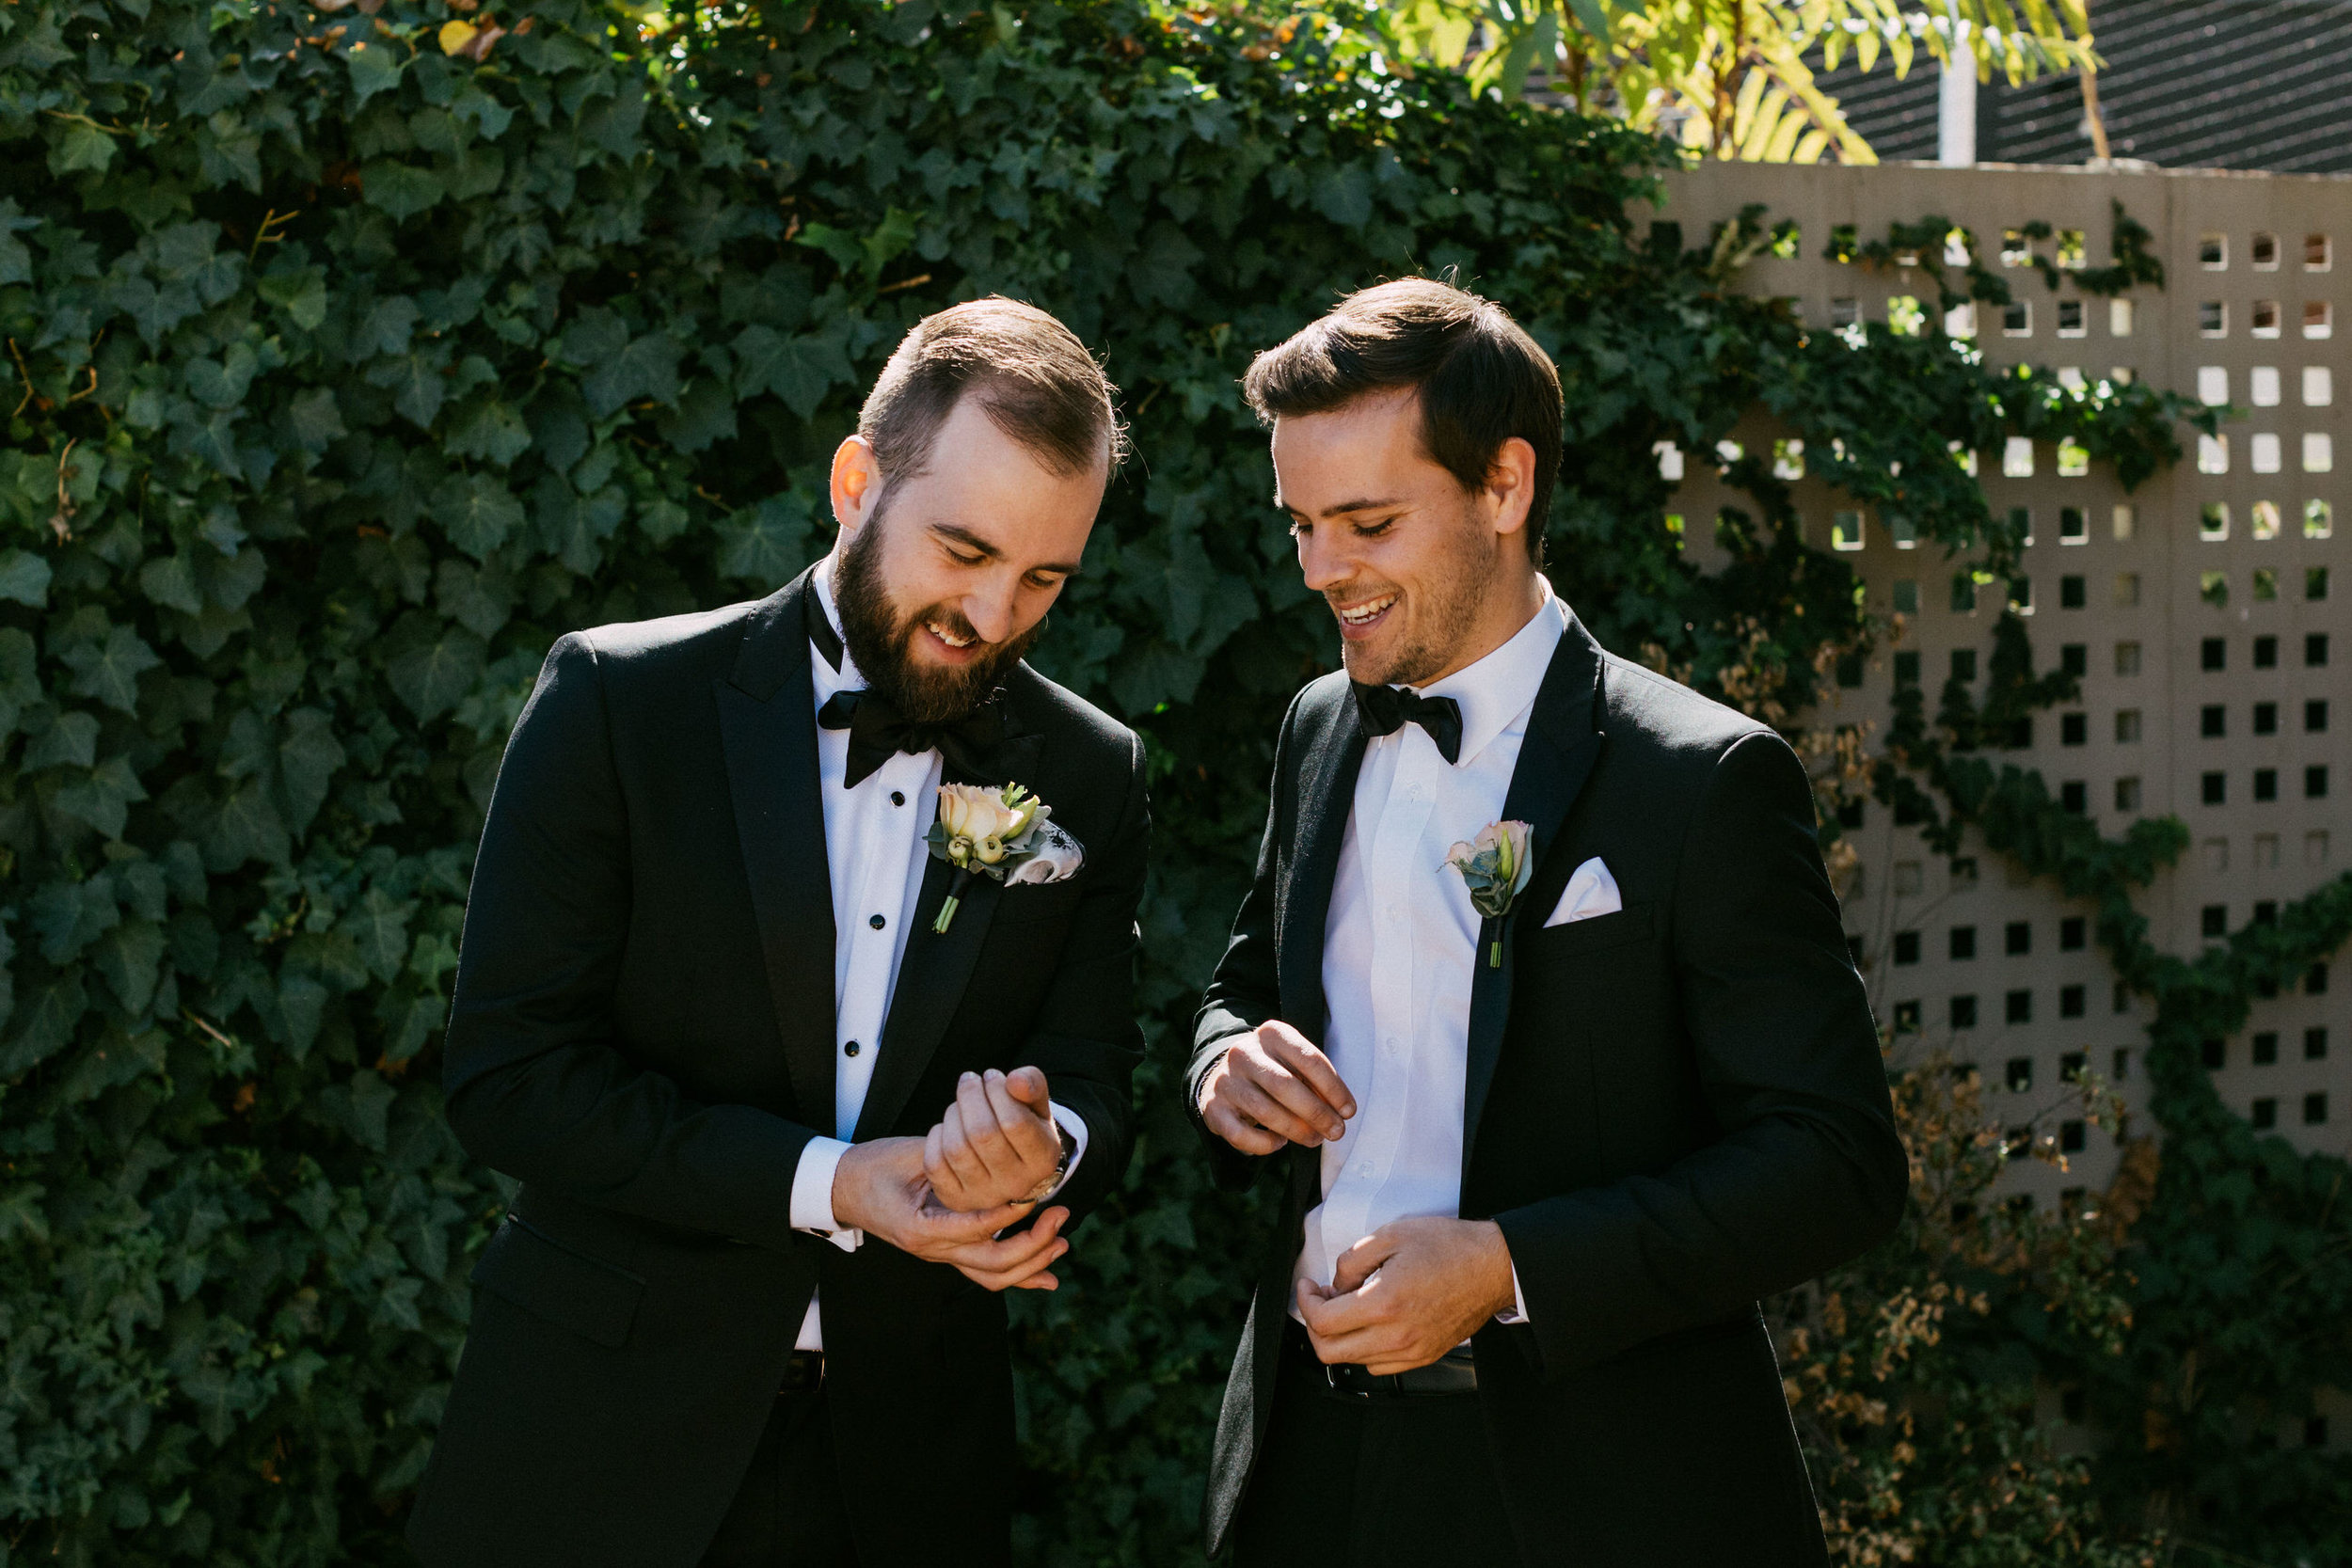 Adelaide Wedding 2019 010.jpg